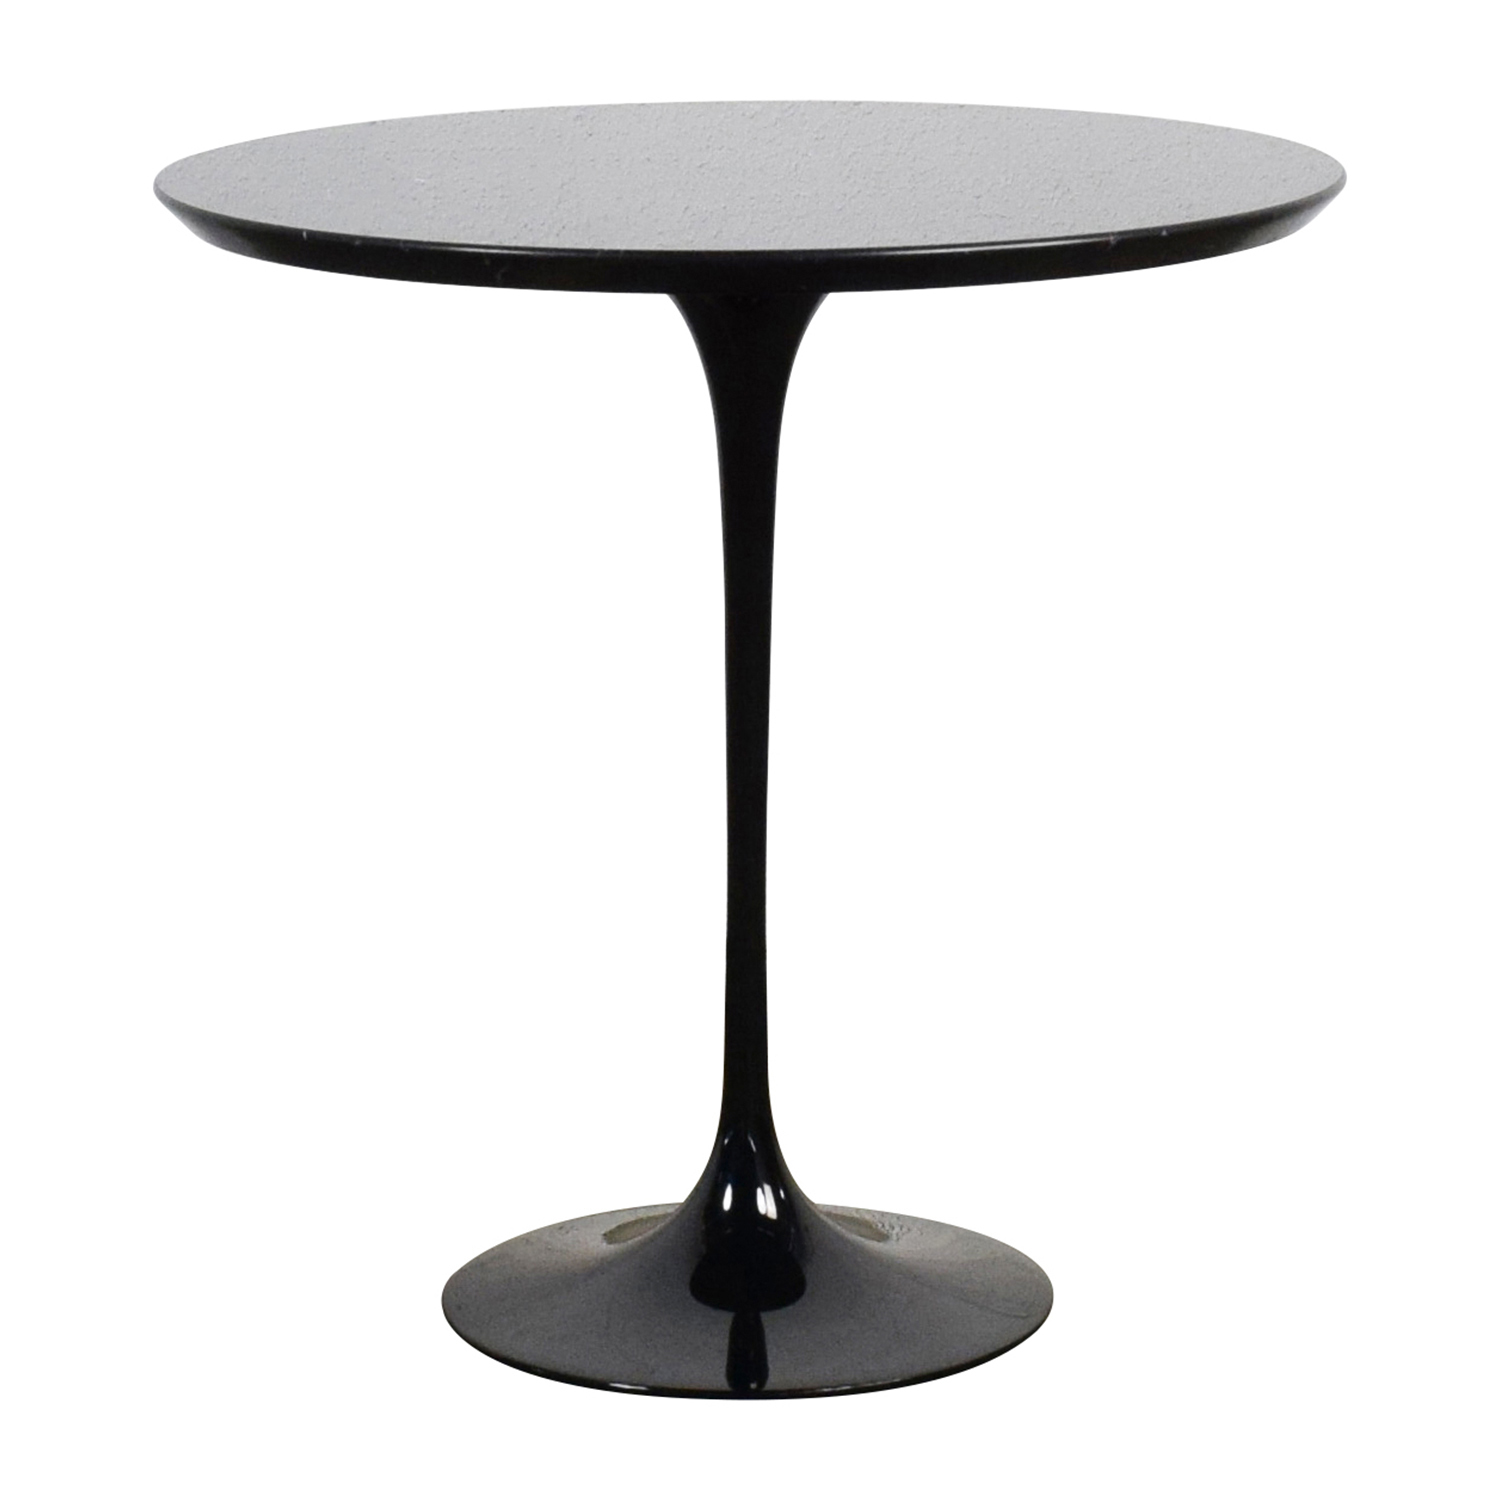 Saarinen Saarinen Black Marble End Table coupon